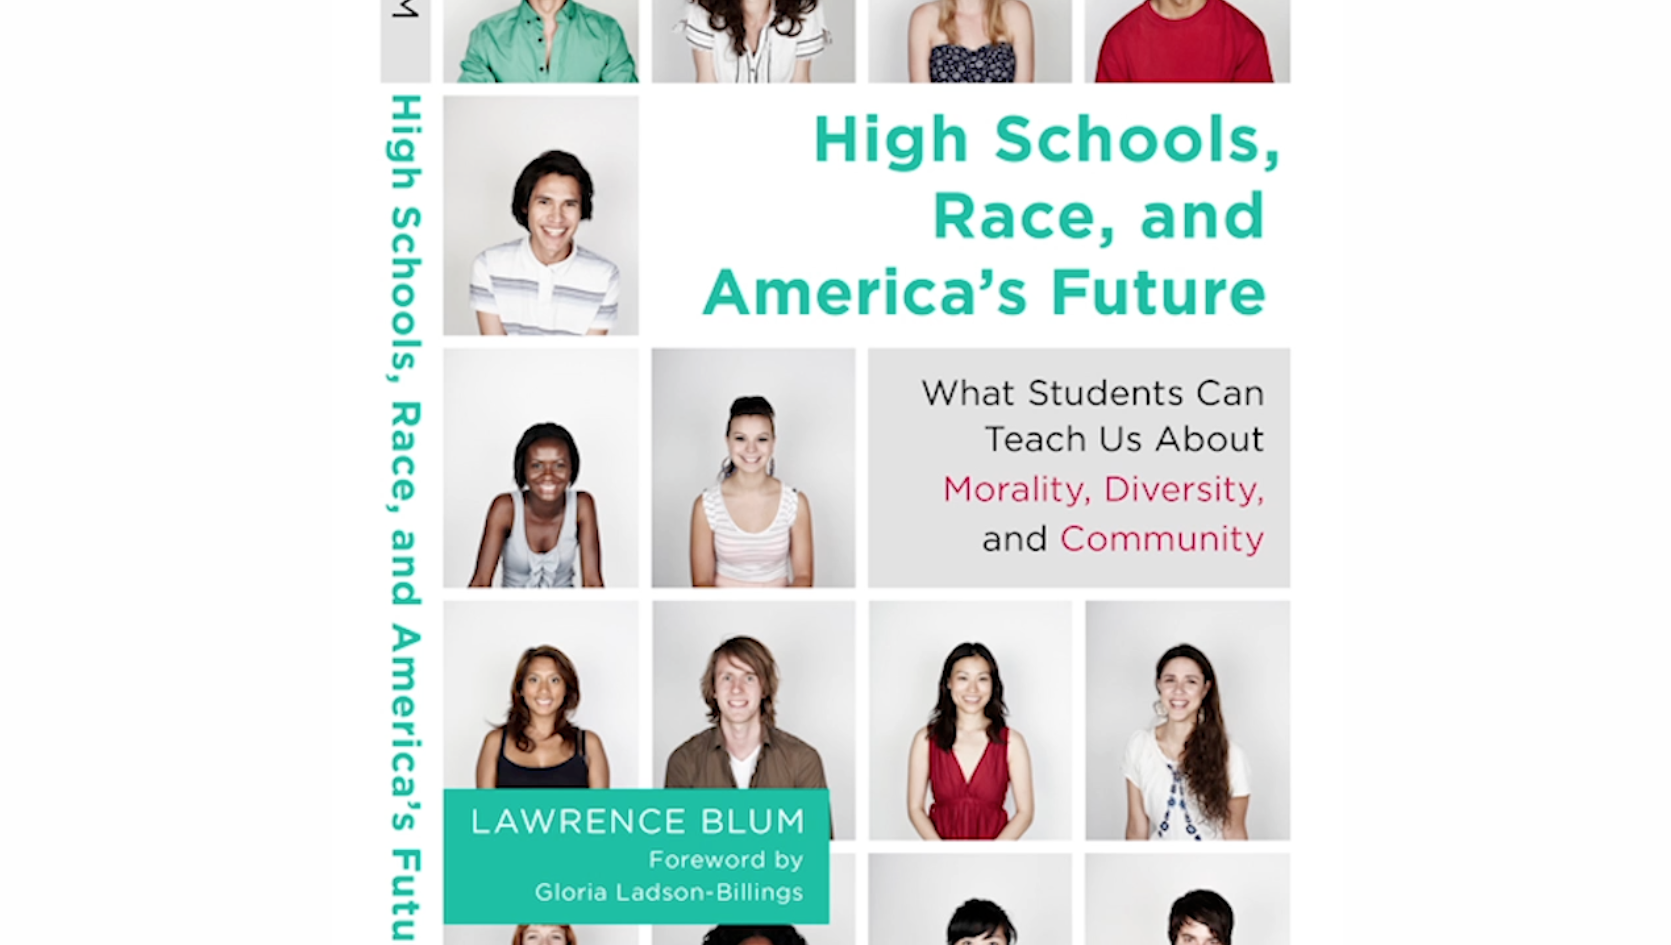 Larry Blum – High Schools, Race, and America's Future